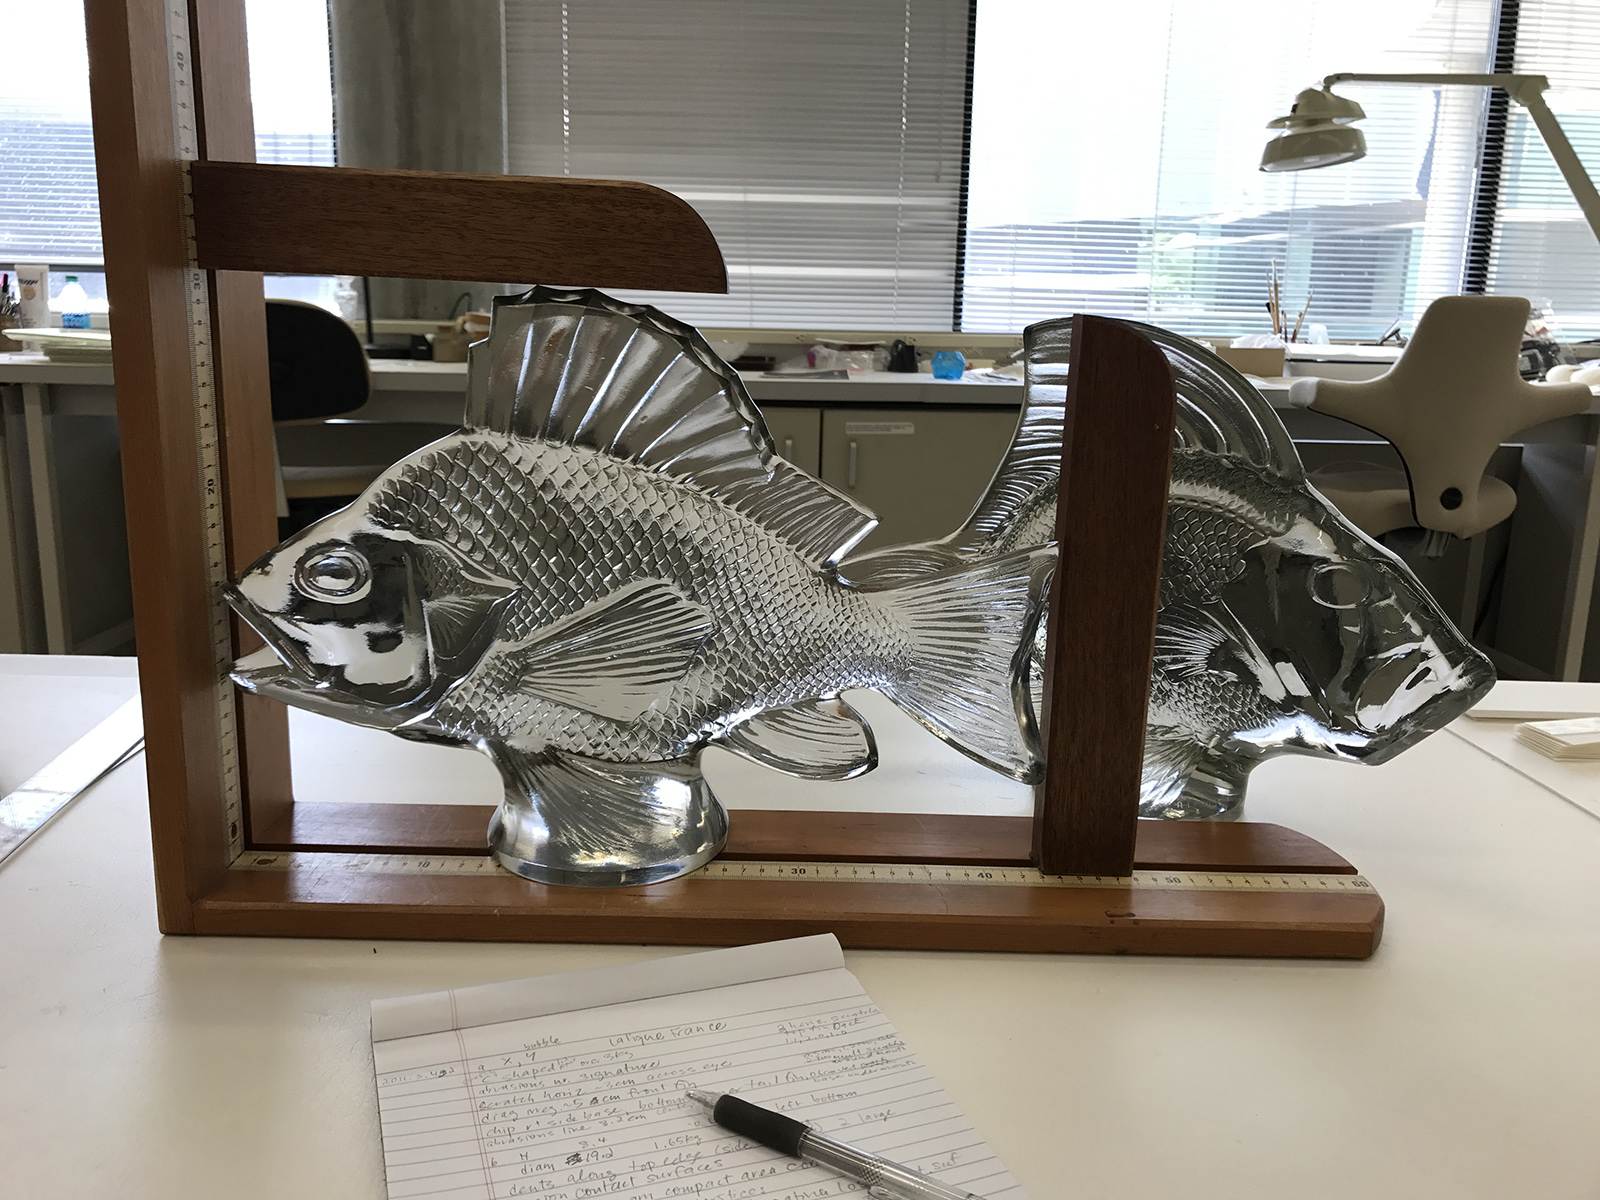 The glass fish are measured and damages are recorded as part of the examination.